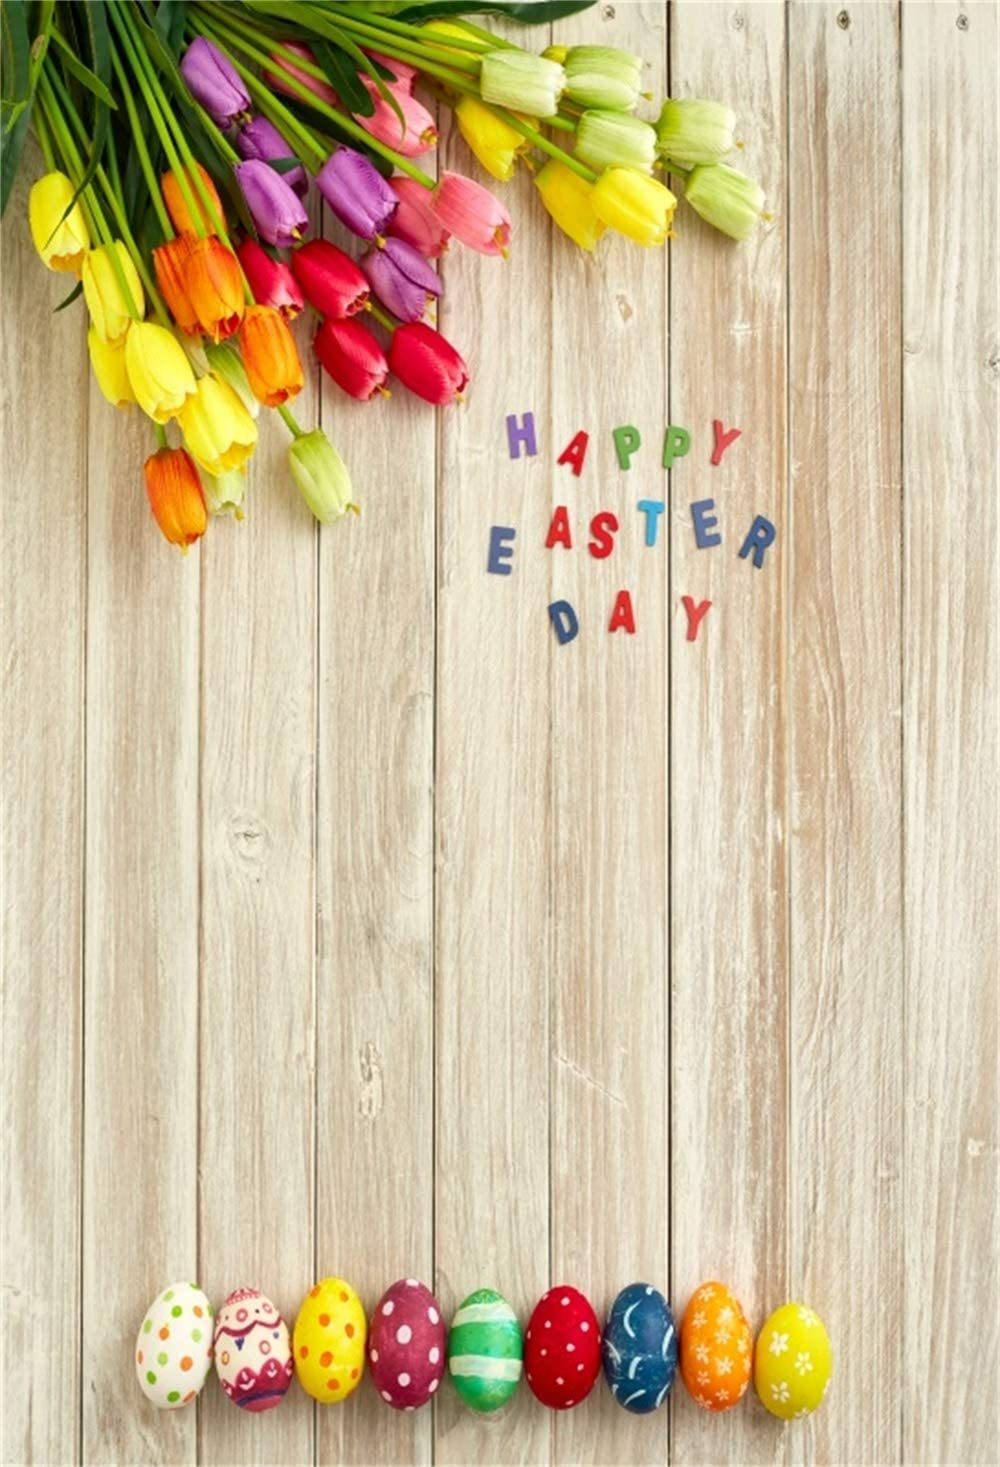 SZZWY Vinyl Happy Easter Day Photography Background 8x6.5ft Blooming Yellow Narcissus Close-up Cute Easter Eggs Grassland Spring Scenic Backdrops Children Adult Portraits Community Easter Egg Hunts